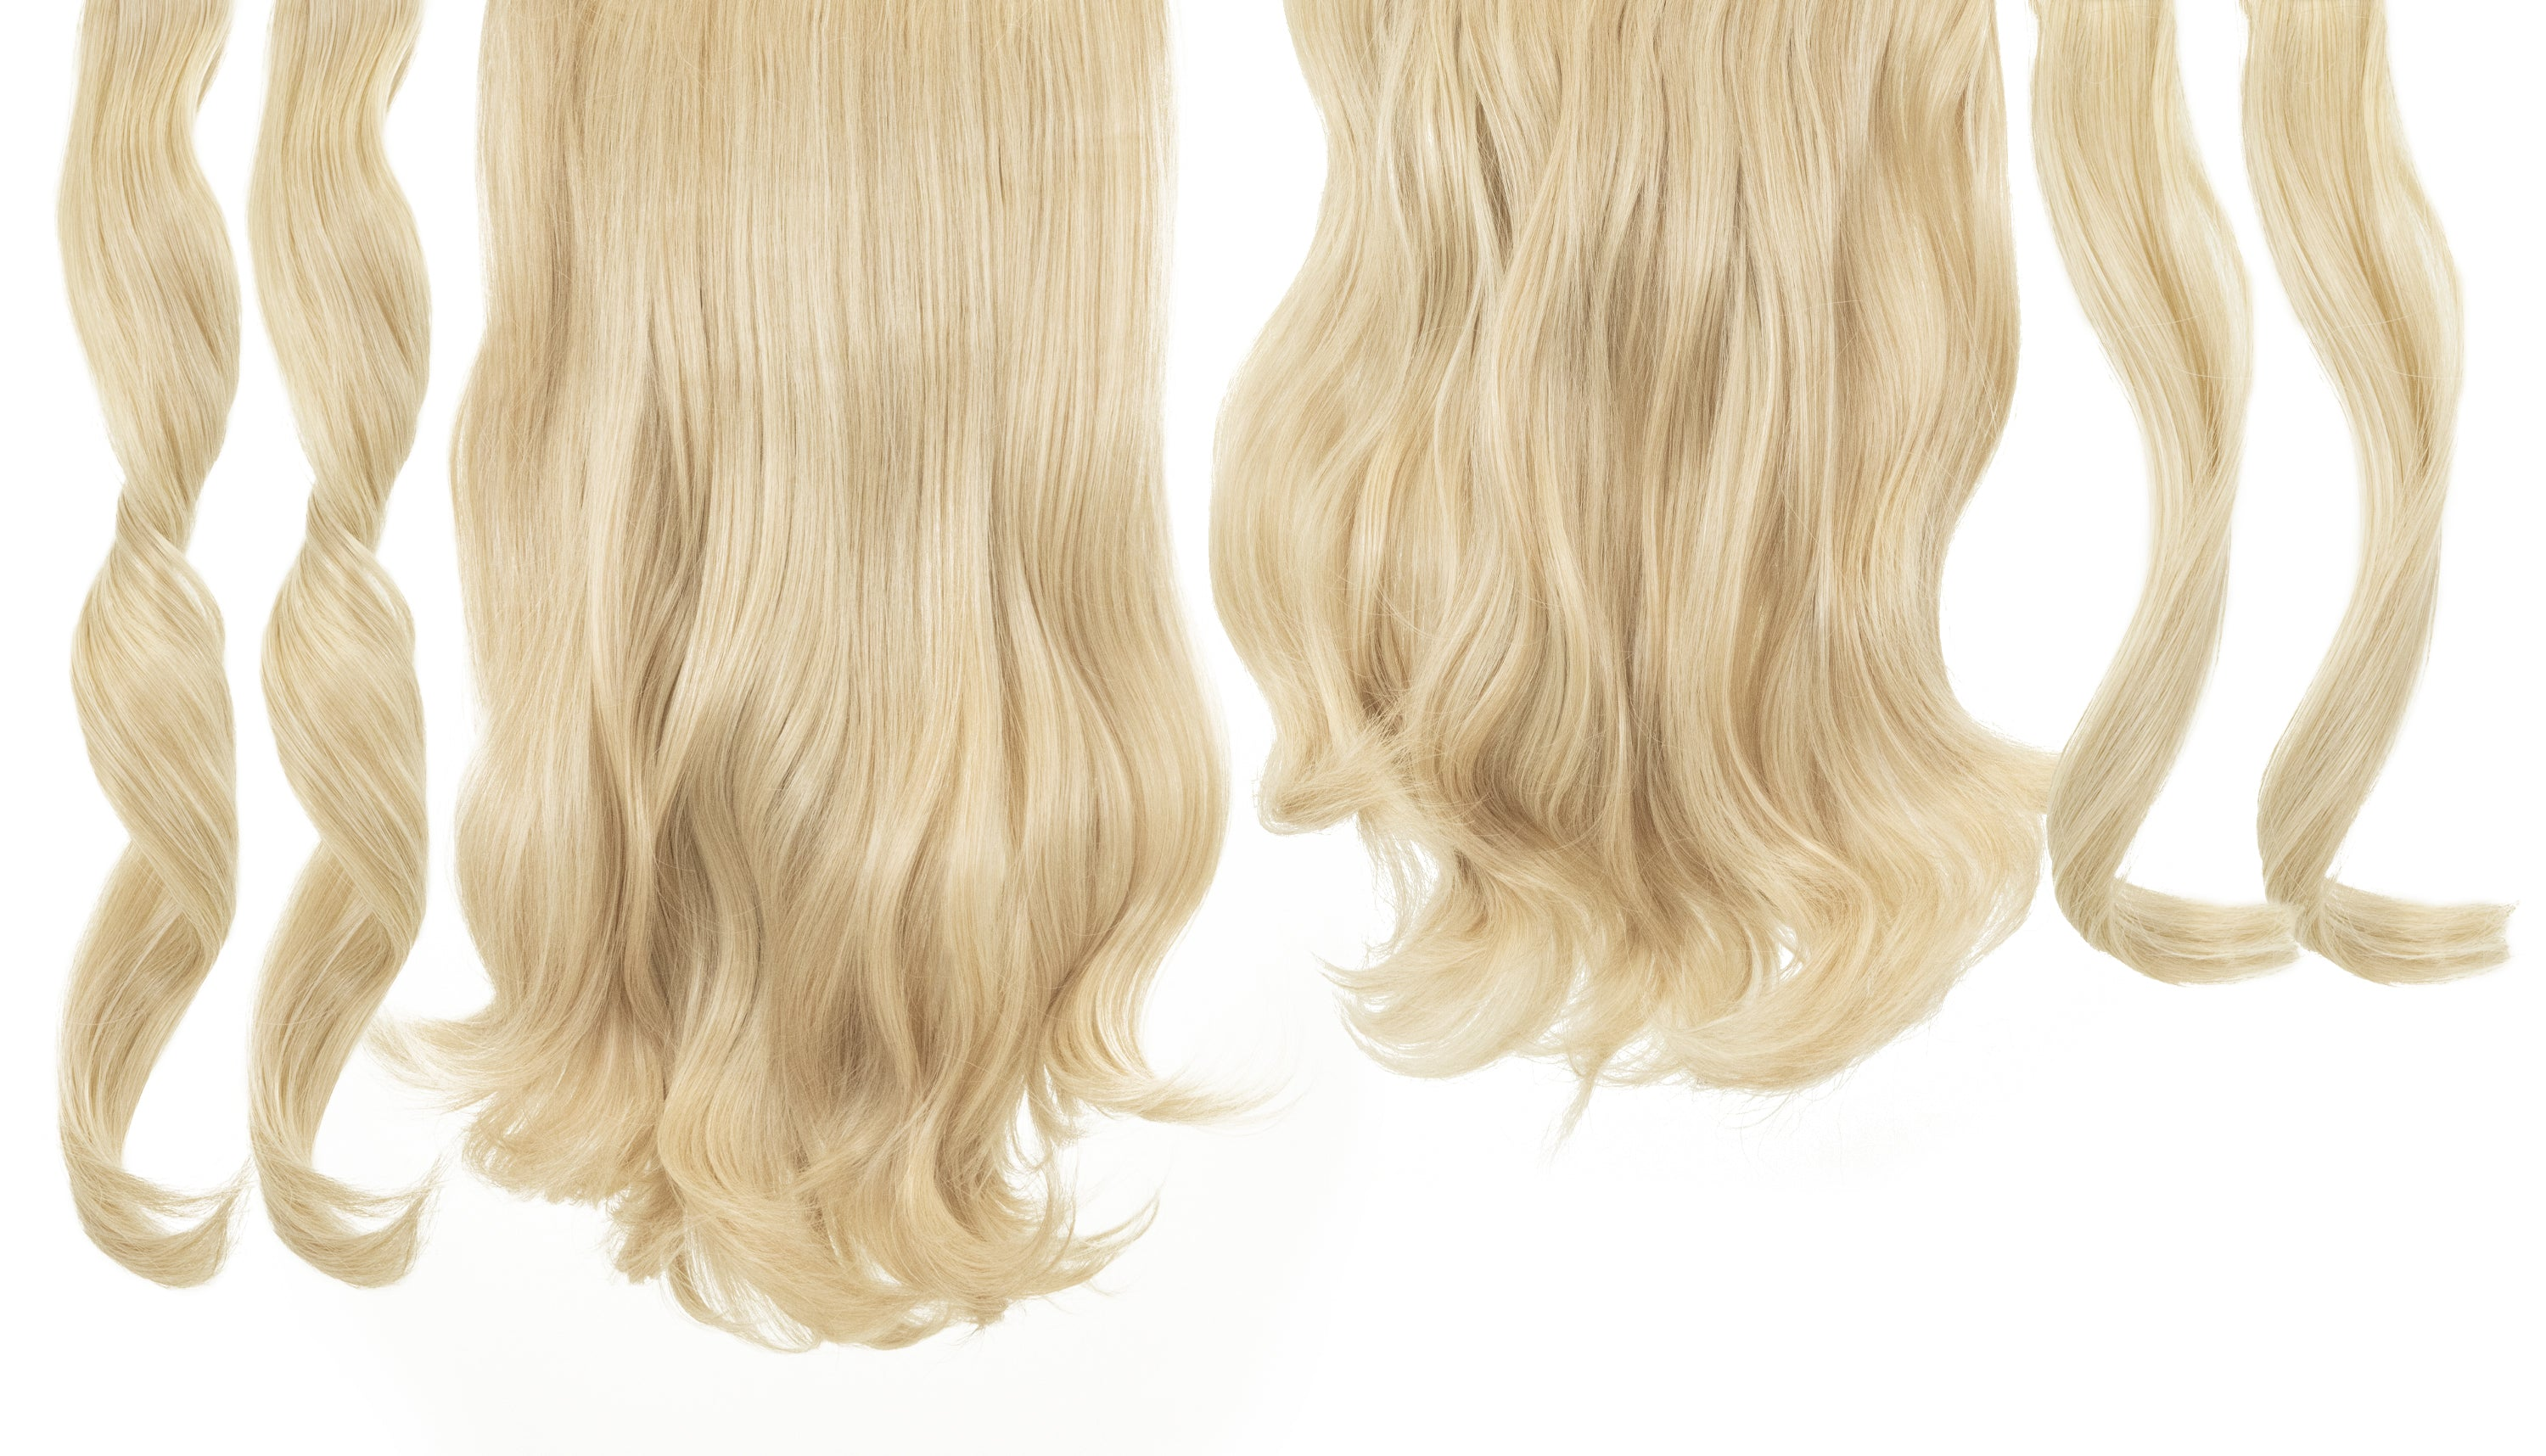 6 in 1 Clip In Hair Extensions - Malibu Blonde